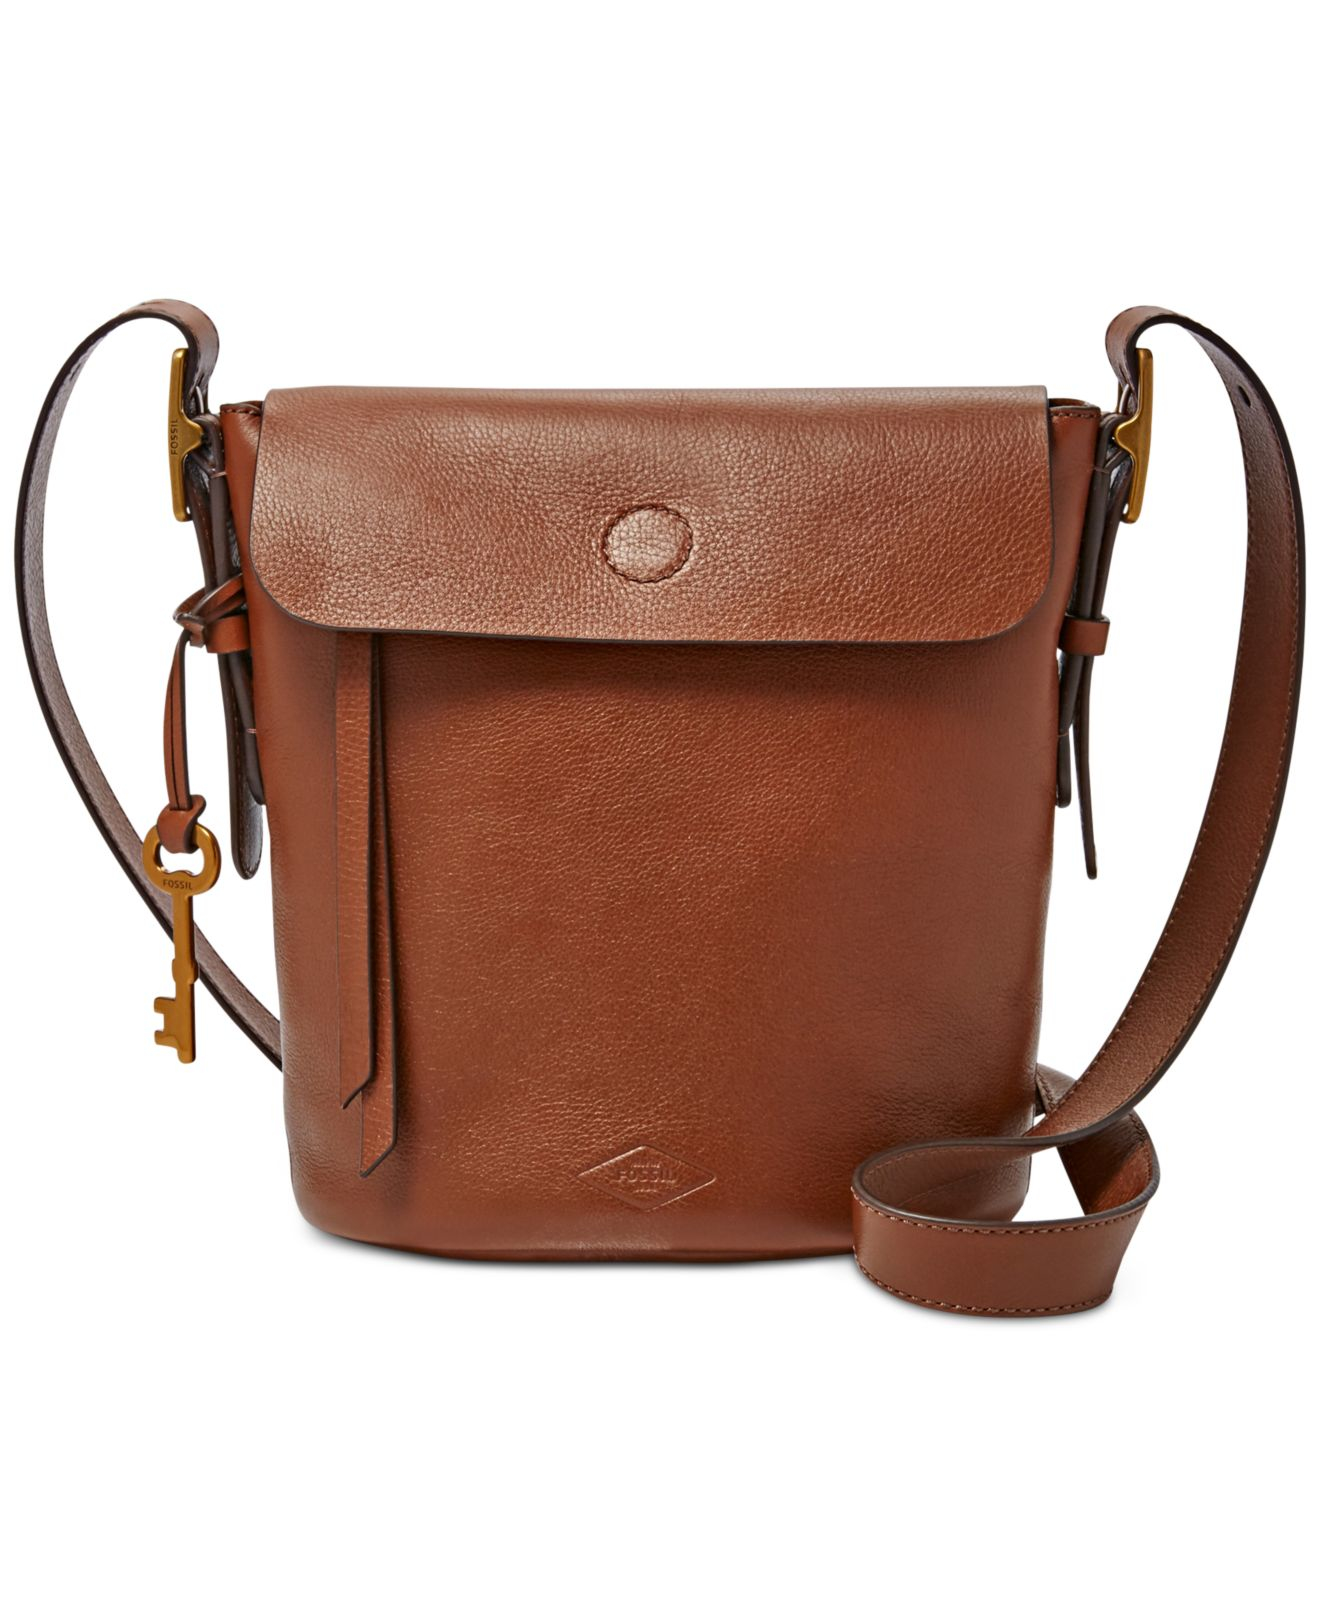 Fossil Haven Small Leather Bucket Bag in Brown